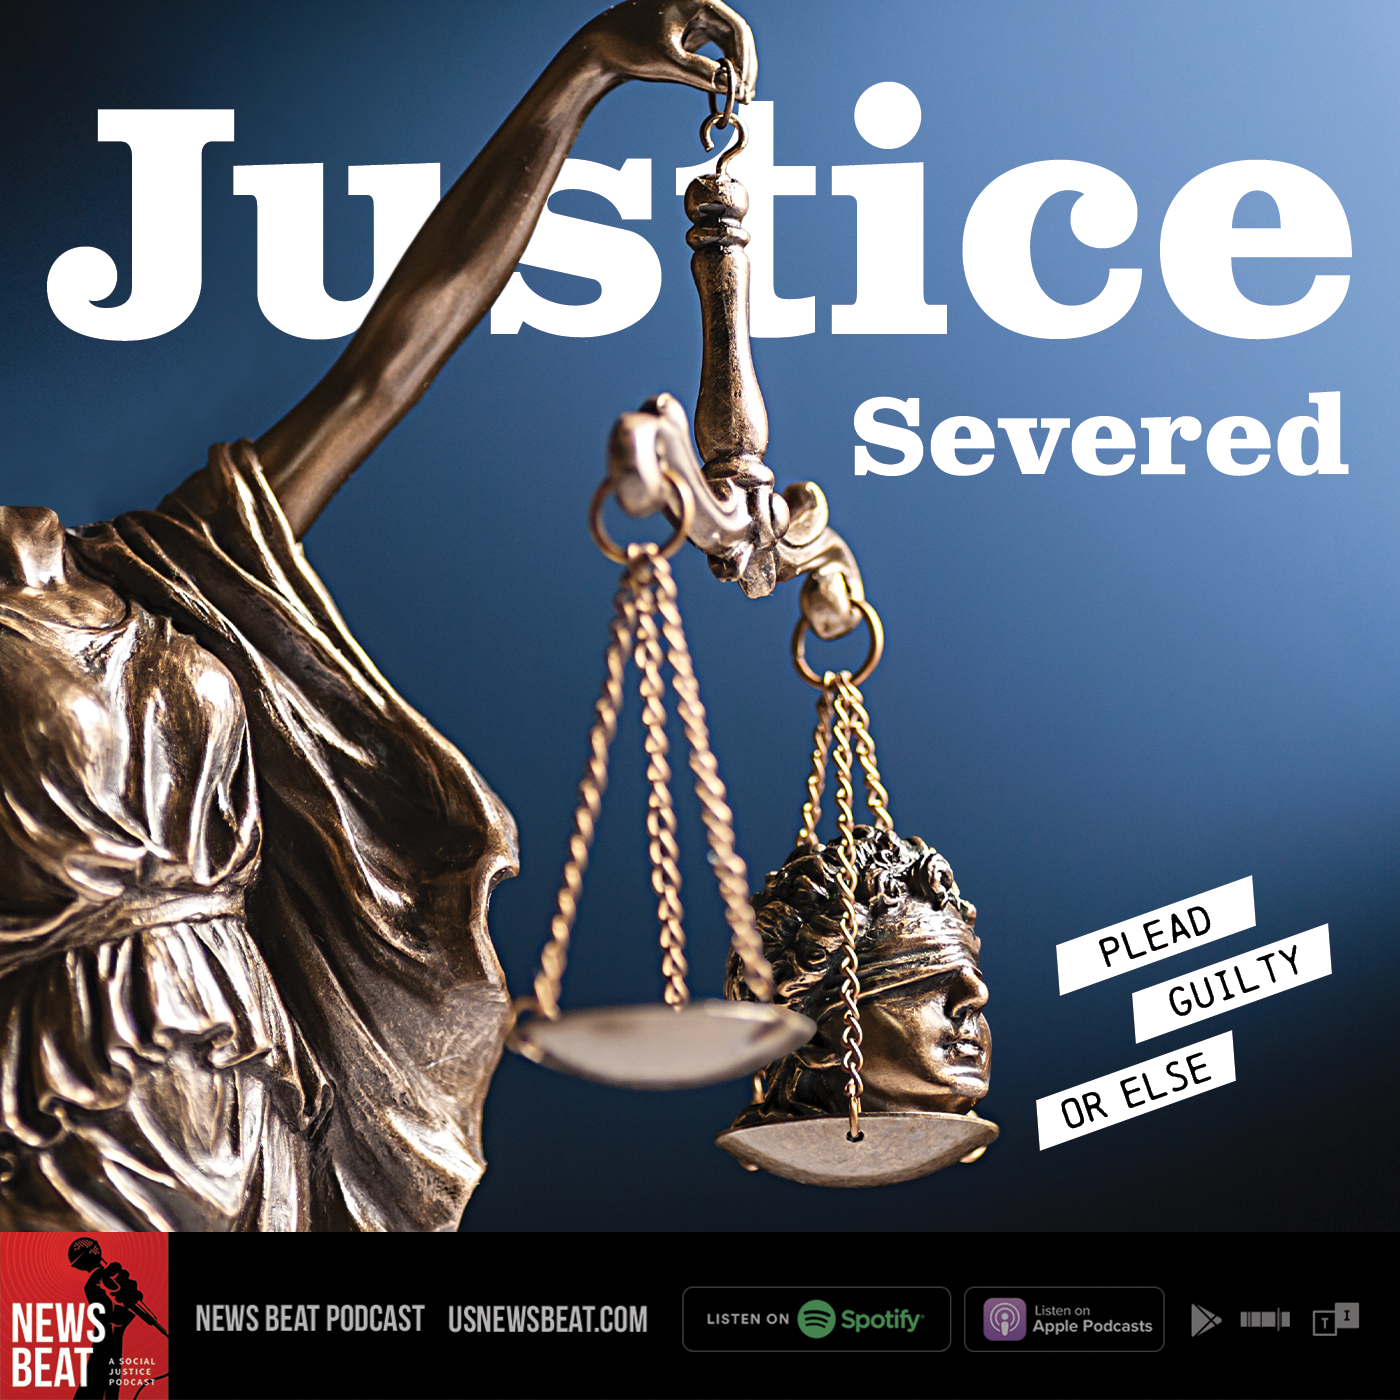 Justice Severed